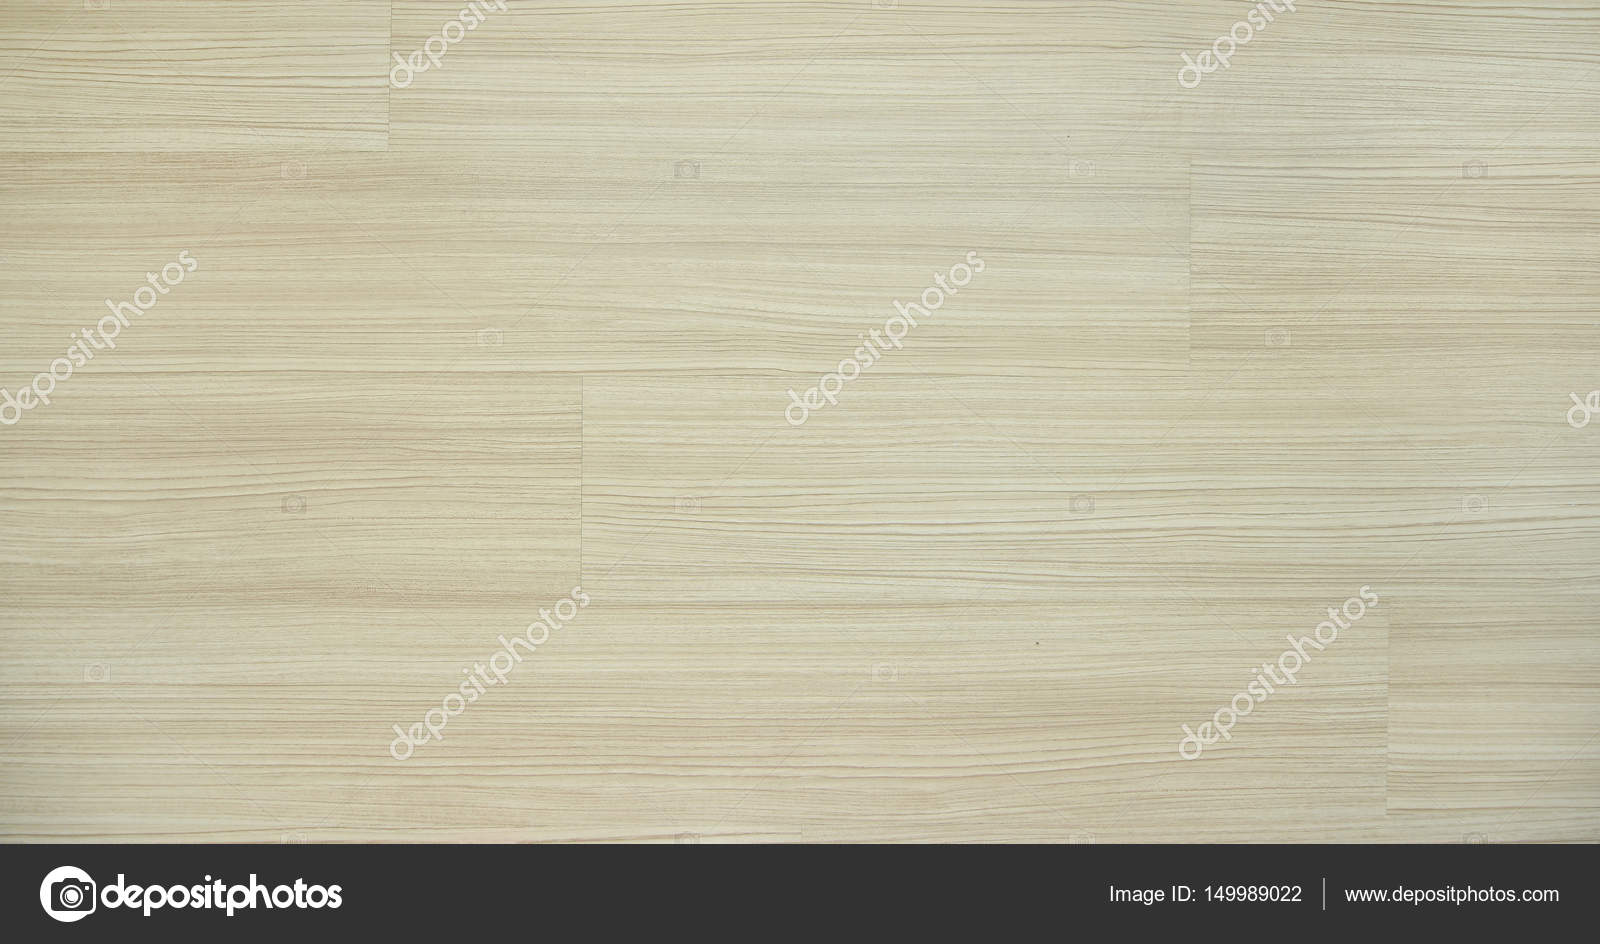 Light Natural Wood Texture Surface Seamless Background Stock Photo